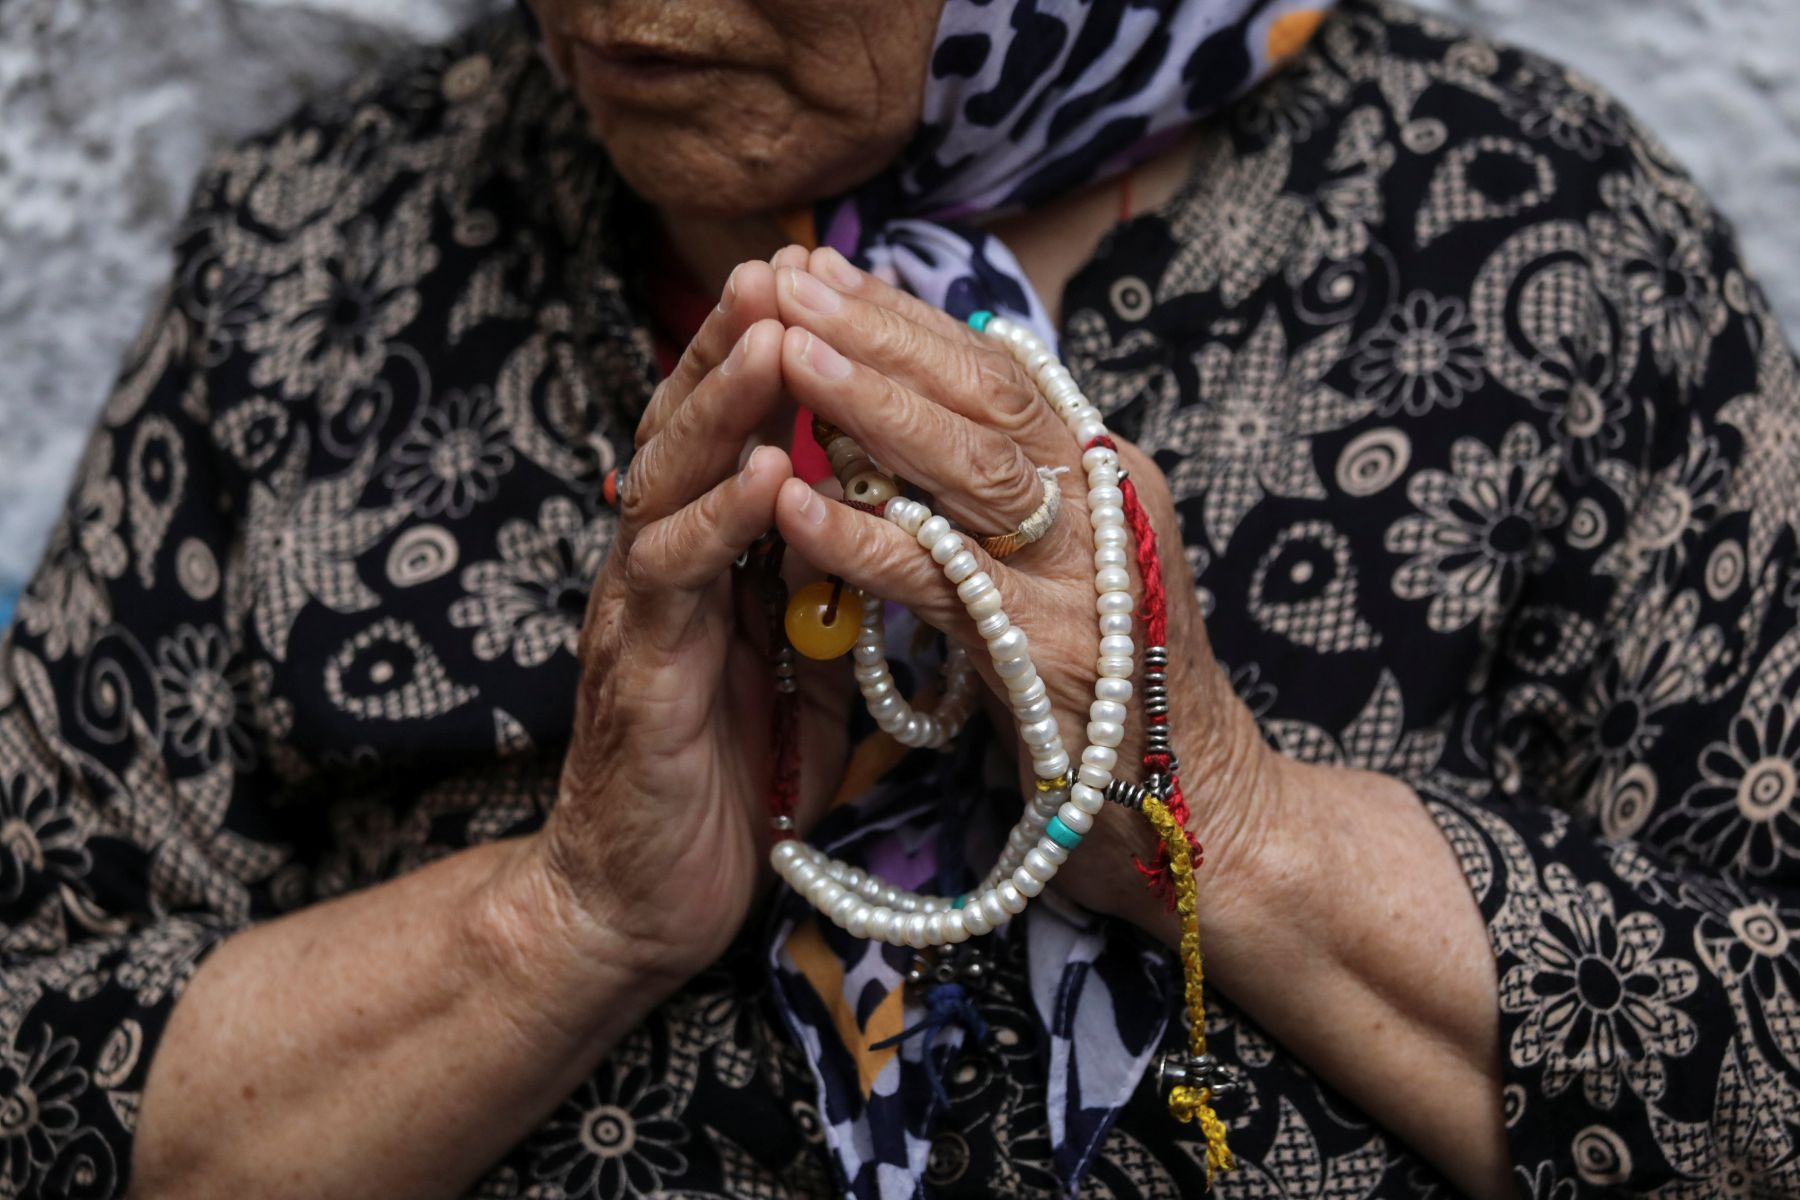 A Tibetan woman attends a special prayer for the health of her spiritual leader the Dalai Lama at a Tibetan refugee colony in New Delhi